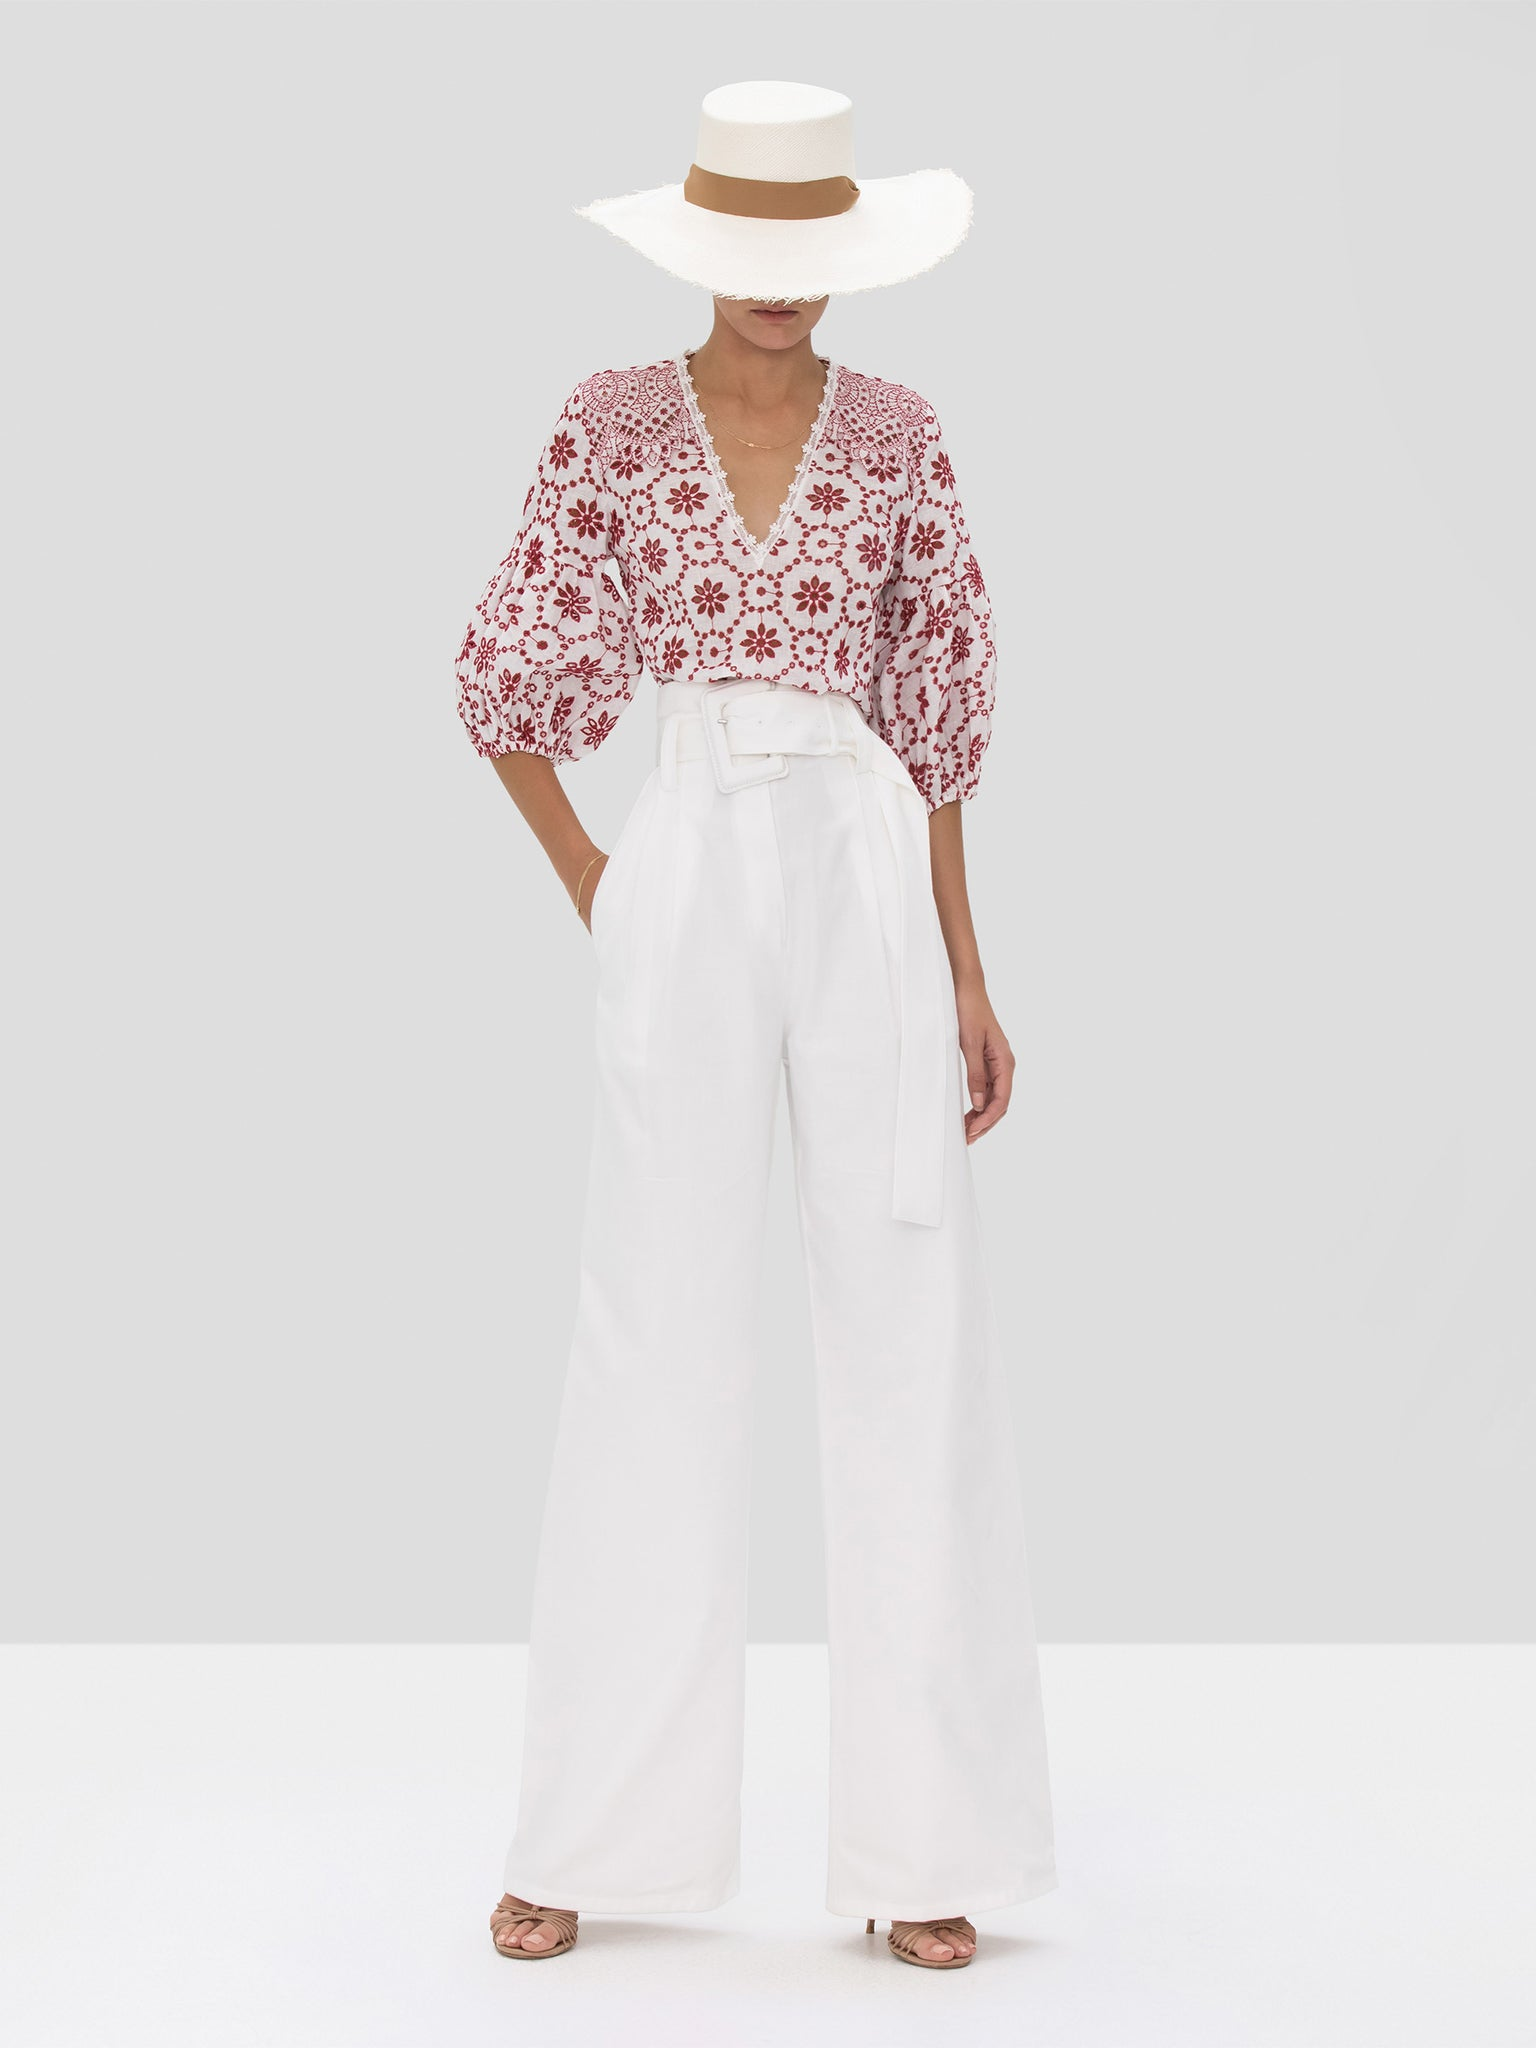 The Lanai Top in Berry Eyelet Embroidery from the Spring Summer 2020 Ready To Wear Collection